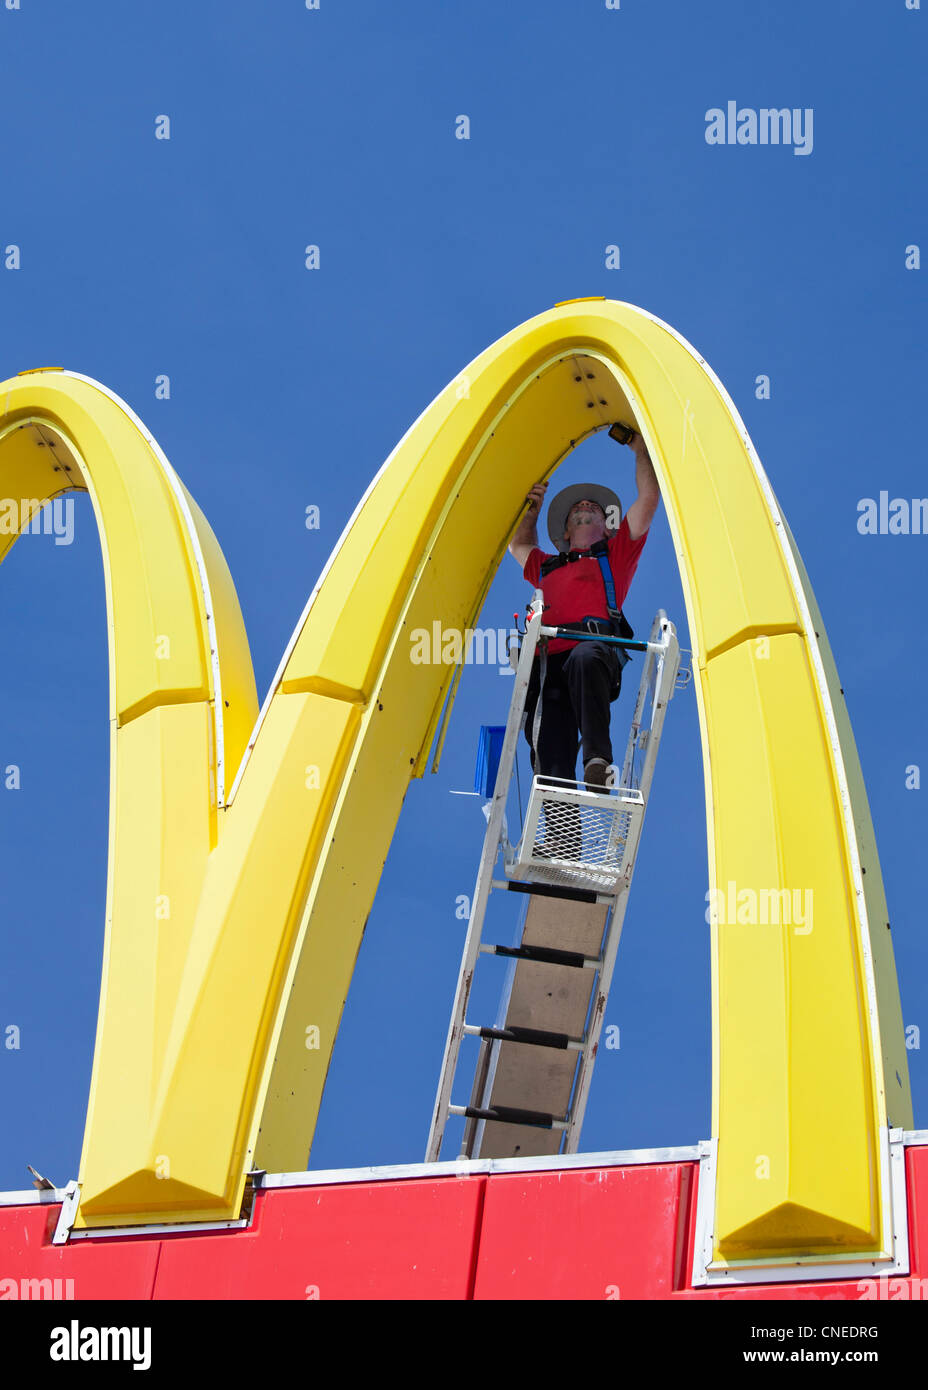 Detroit, Michigan - A worker repairs a McDonald's 'Golden Arches' sign. - Stock Image